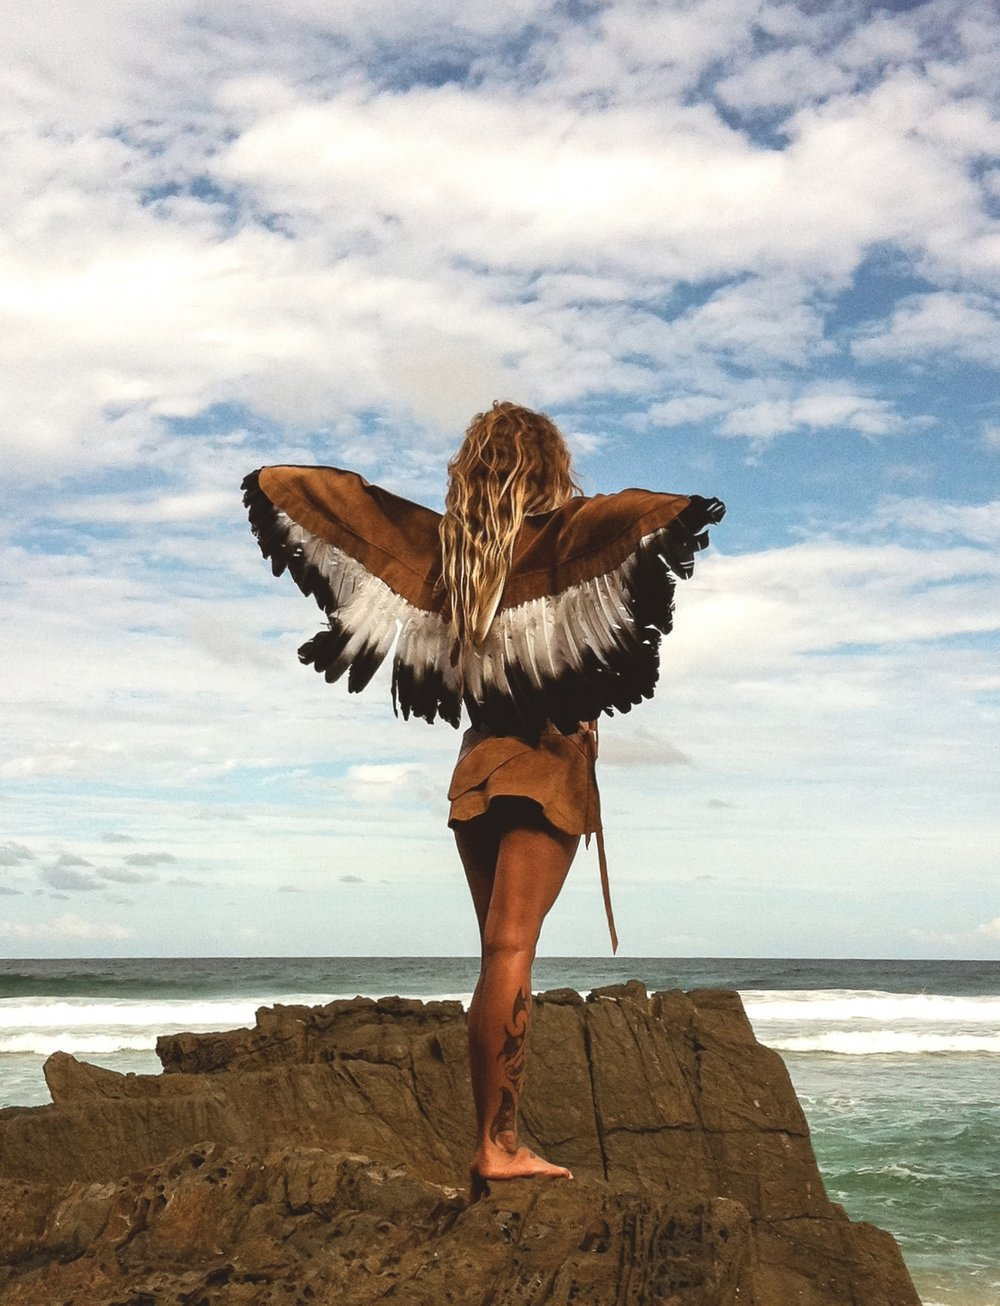 A shot from one of our most beautiful photoshoots. Romina Gardella, the Eagle Woman.